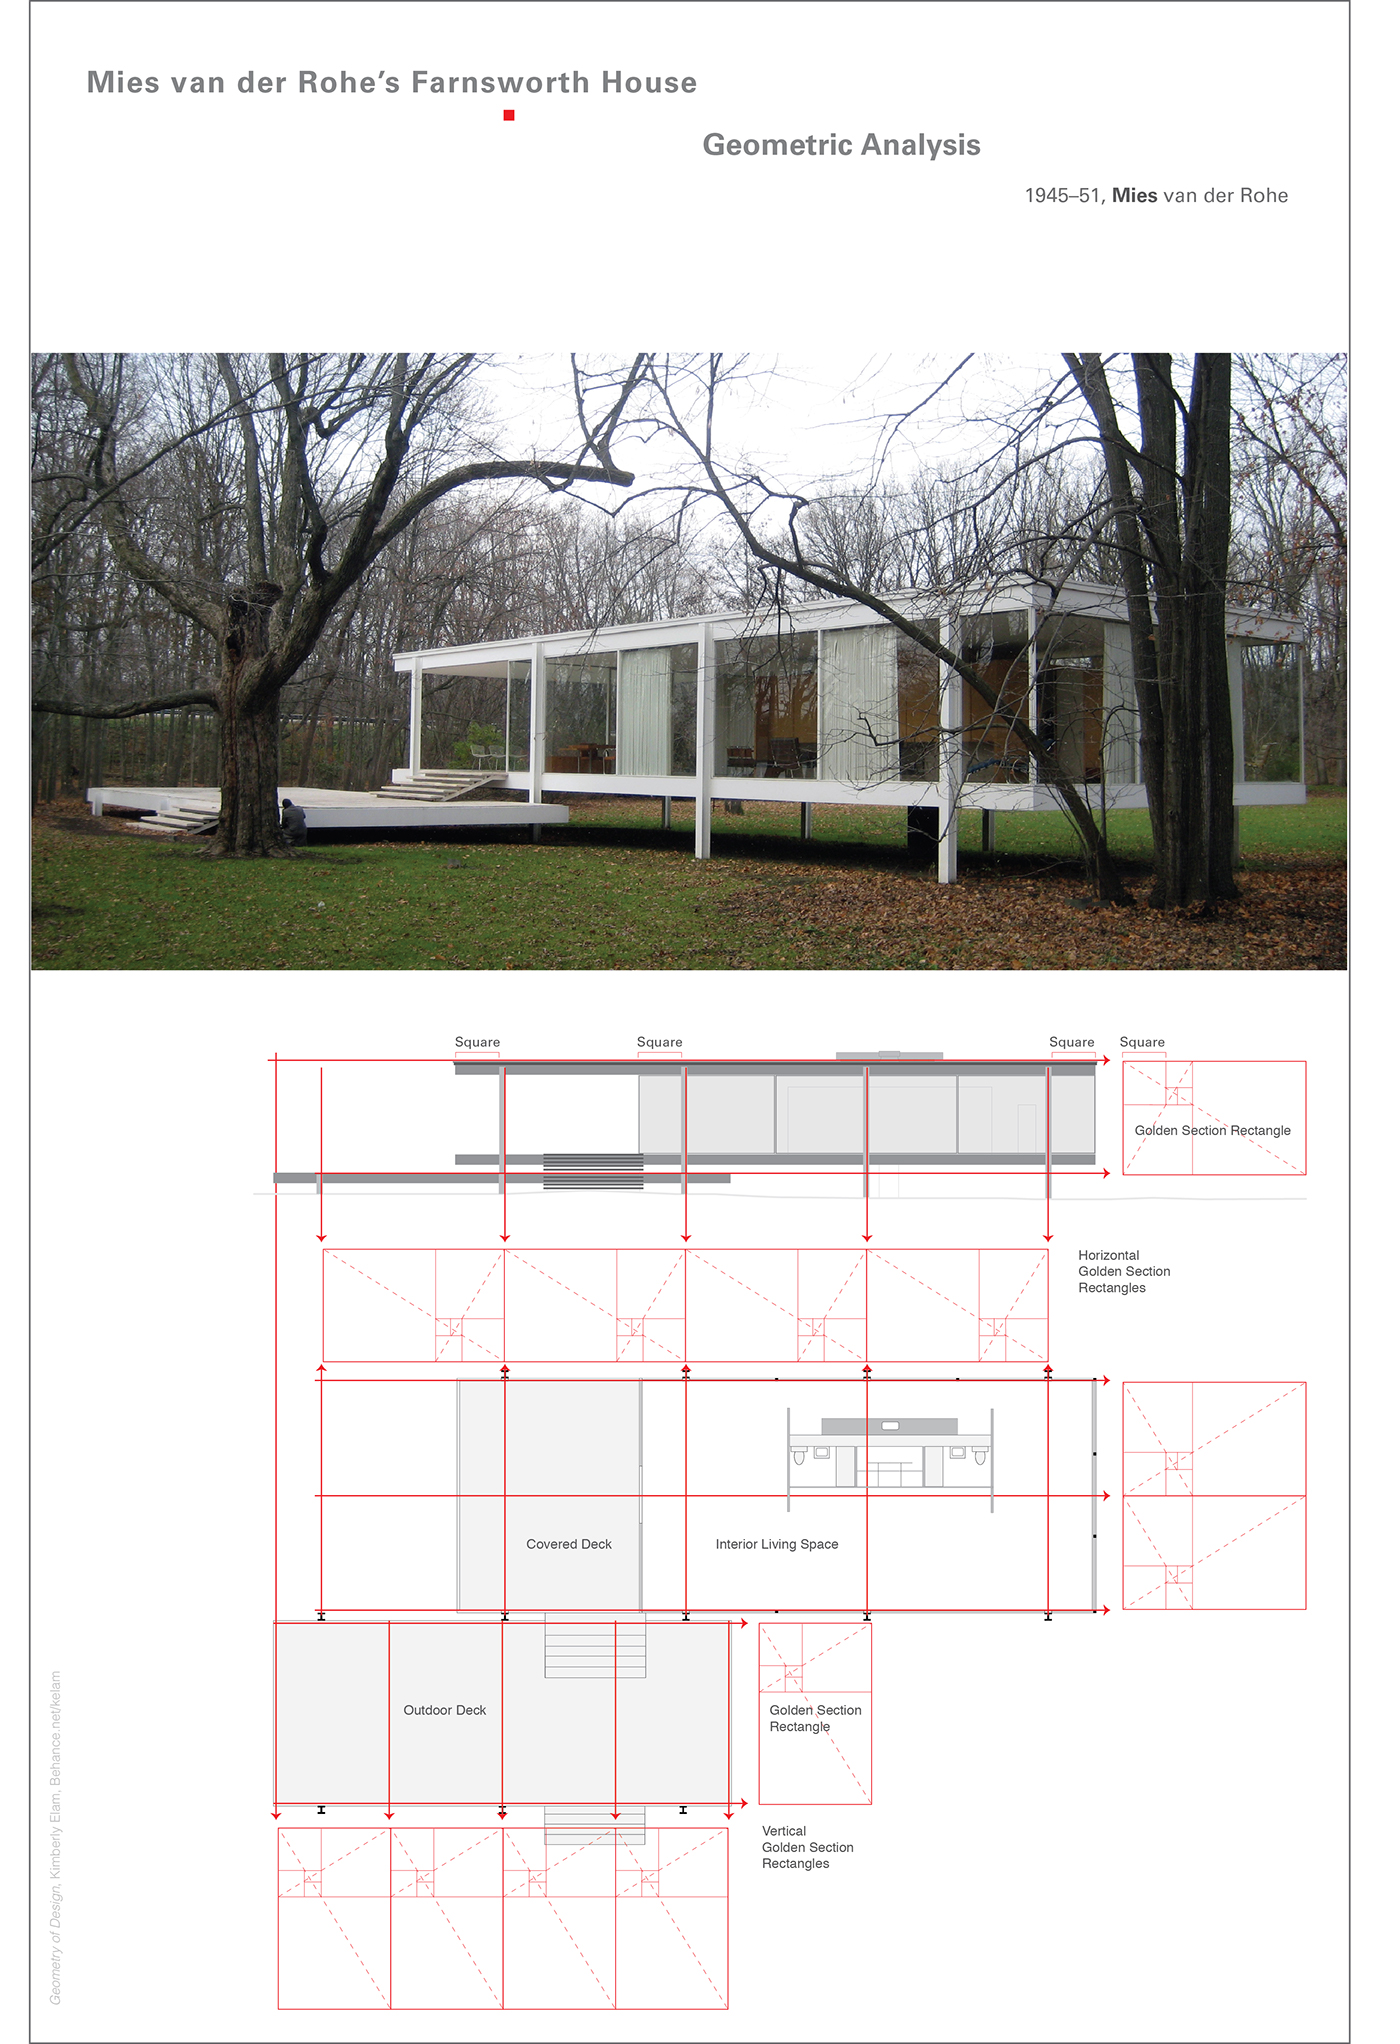 Mies Der Rohe Farnsworth House Plan der rohe s farnsworth house geometric analysis on behance